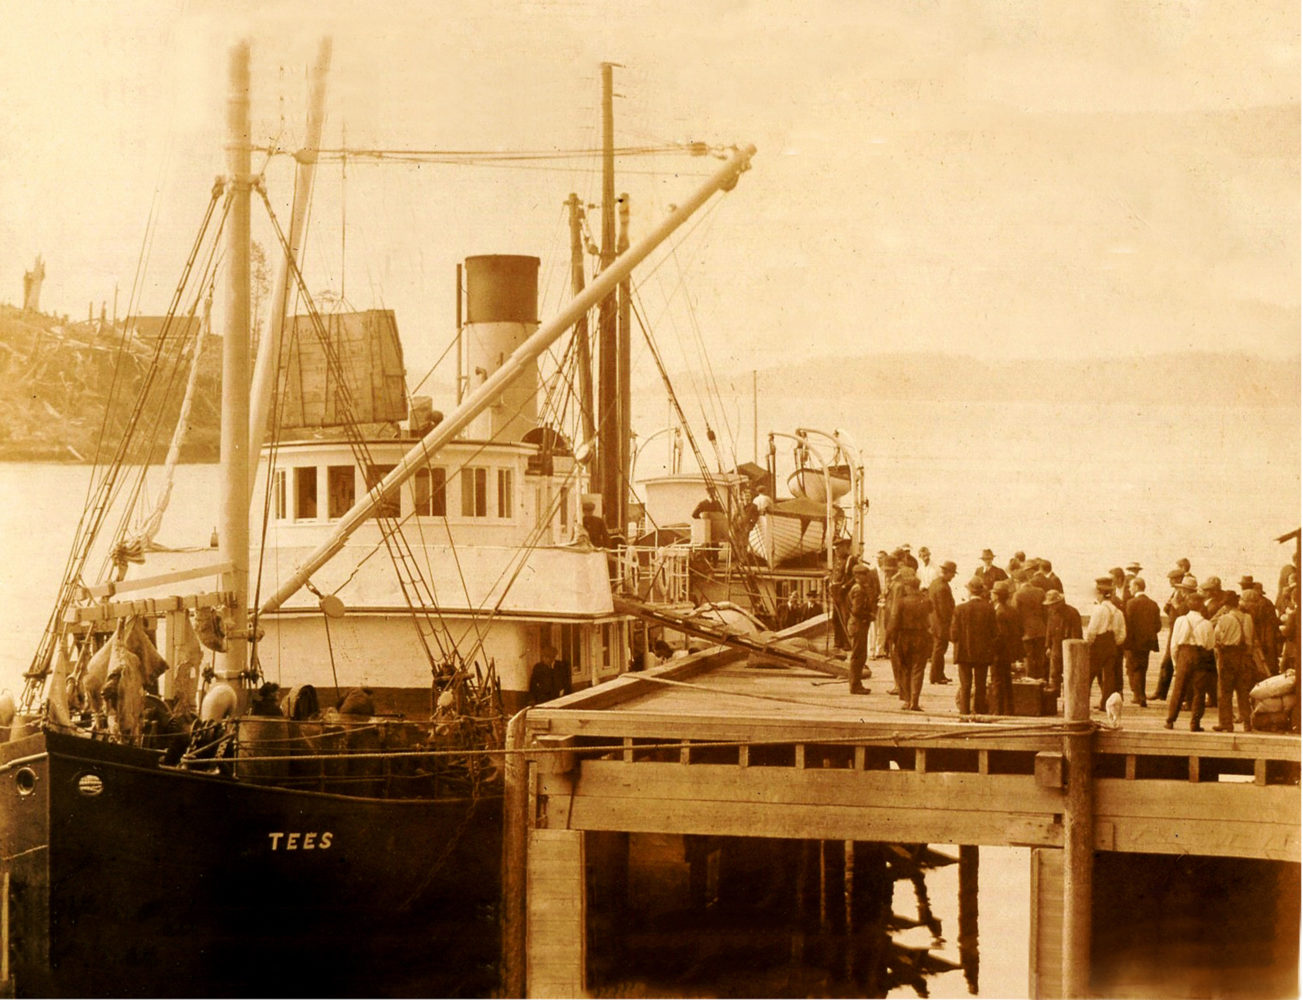 #22 - The Tees, Bamfield Cable Station, circa 1915